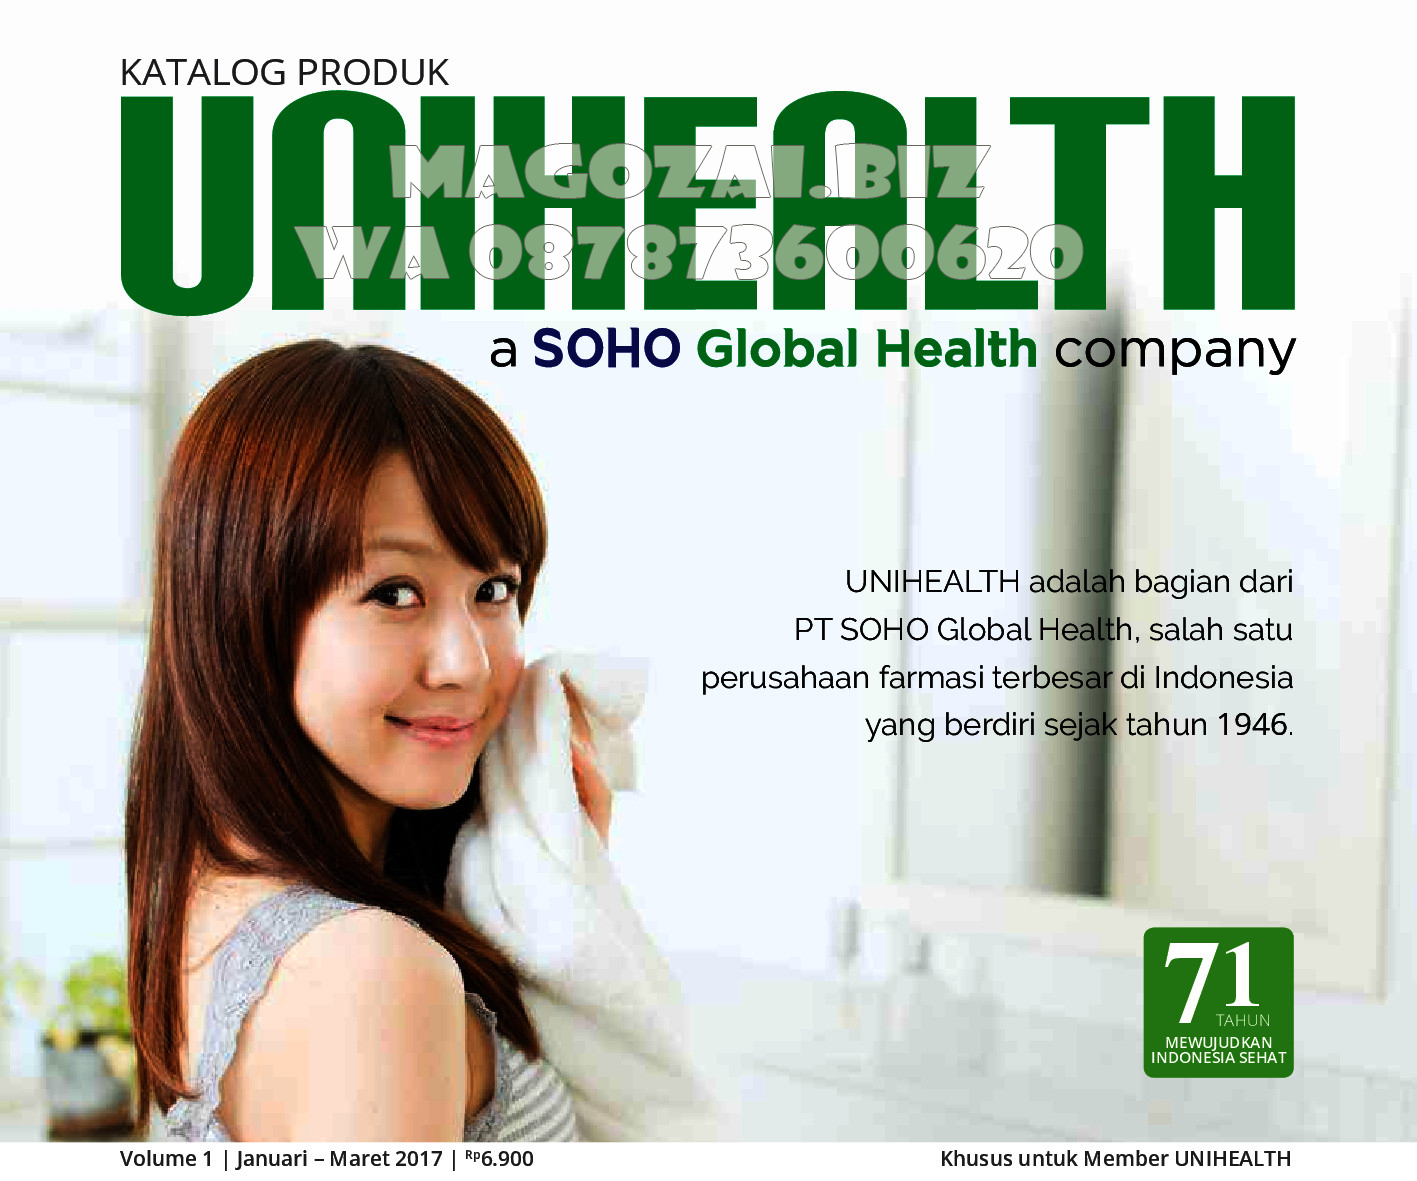 katalog 2017 Unihealth Magozai SOHO – Order Now